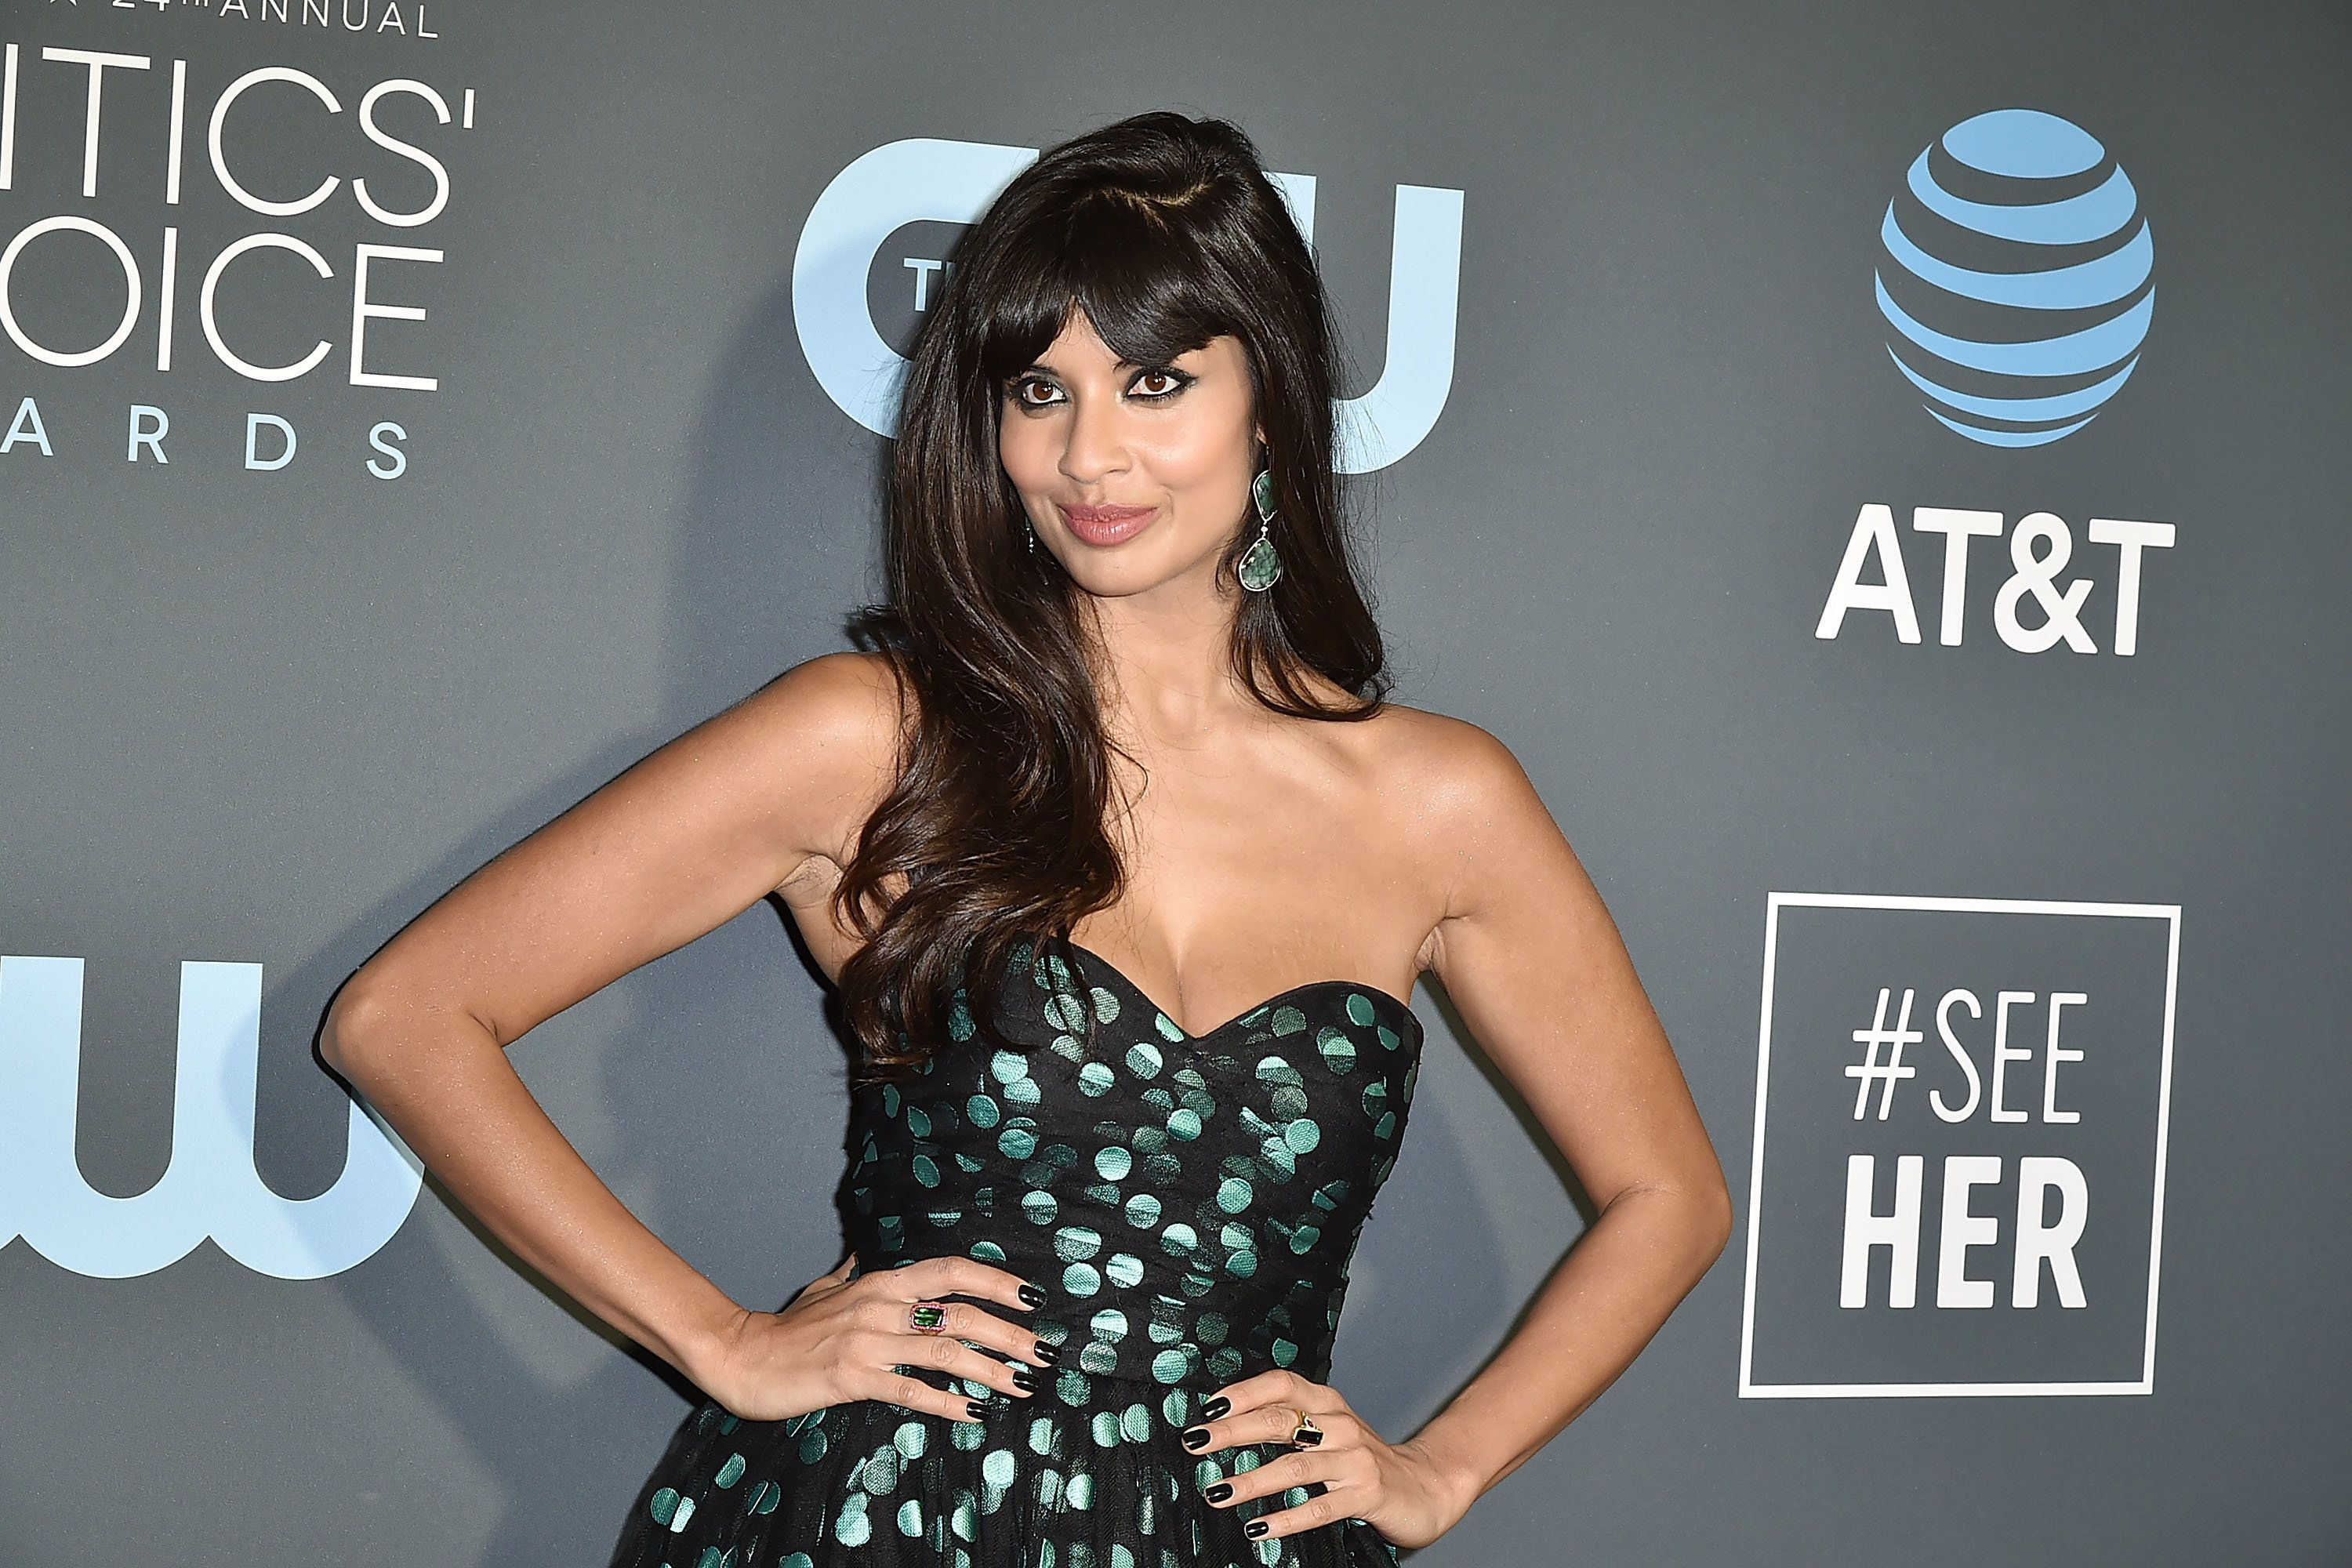 SANTA MONICA, CA - JANUARY 13:  Jameela Jamil attends the 24th Annual Critics' Choice Awards - Arrivals at Barker Hangar on January 13, 2019 in Santa Monica, California.  (Photo by David Crotty/Patrick McMullan via Getty Images)